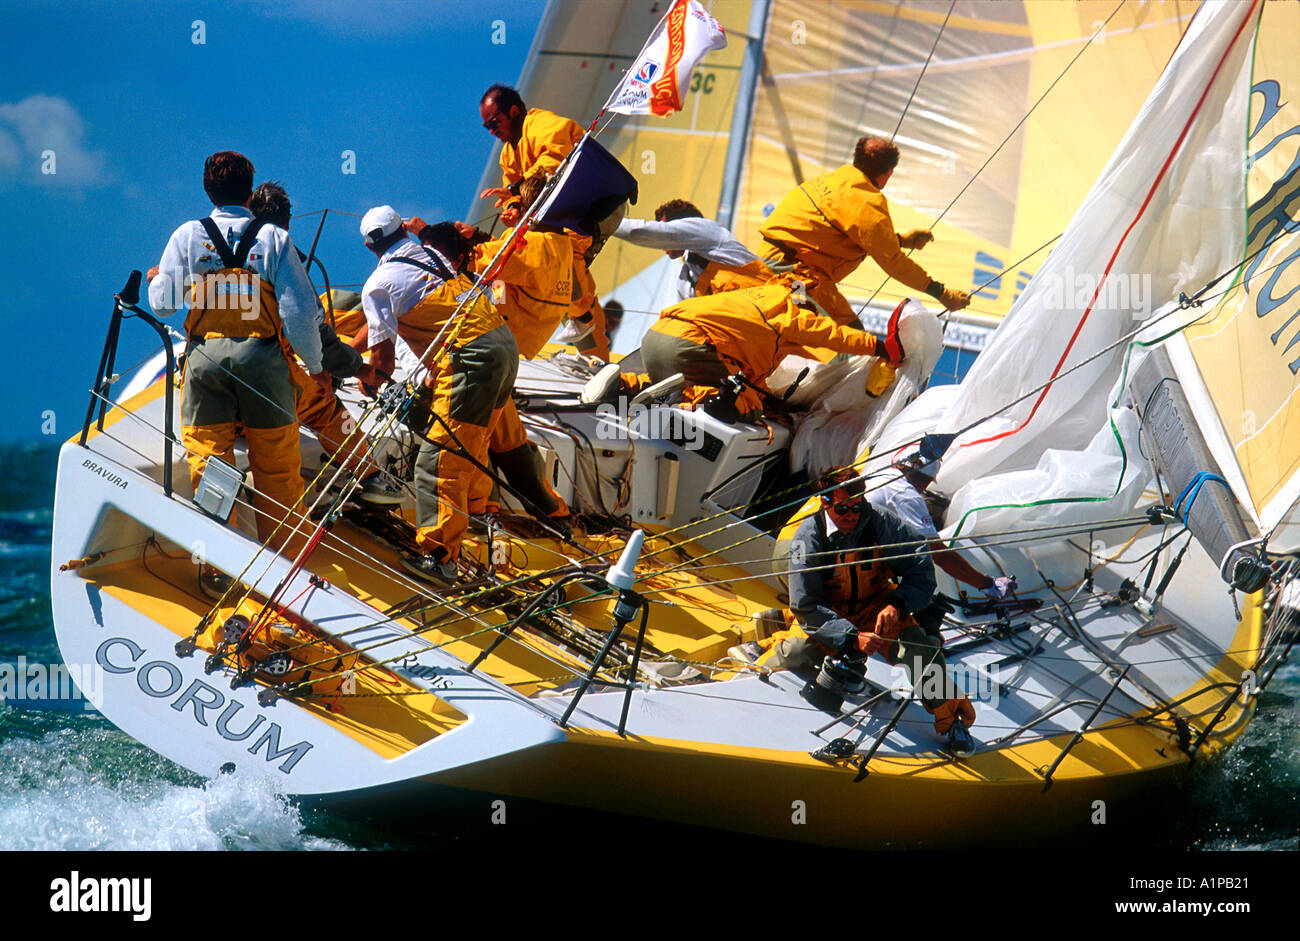 French Racing Yacht Corum At Mark Rounding Admirals Cup